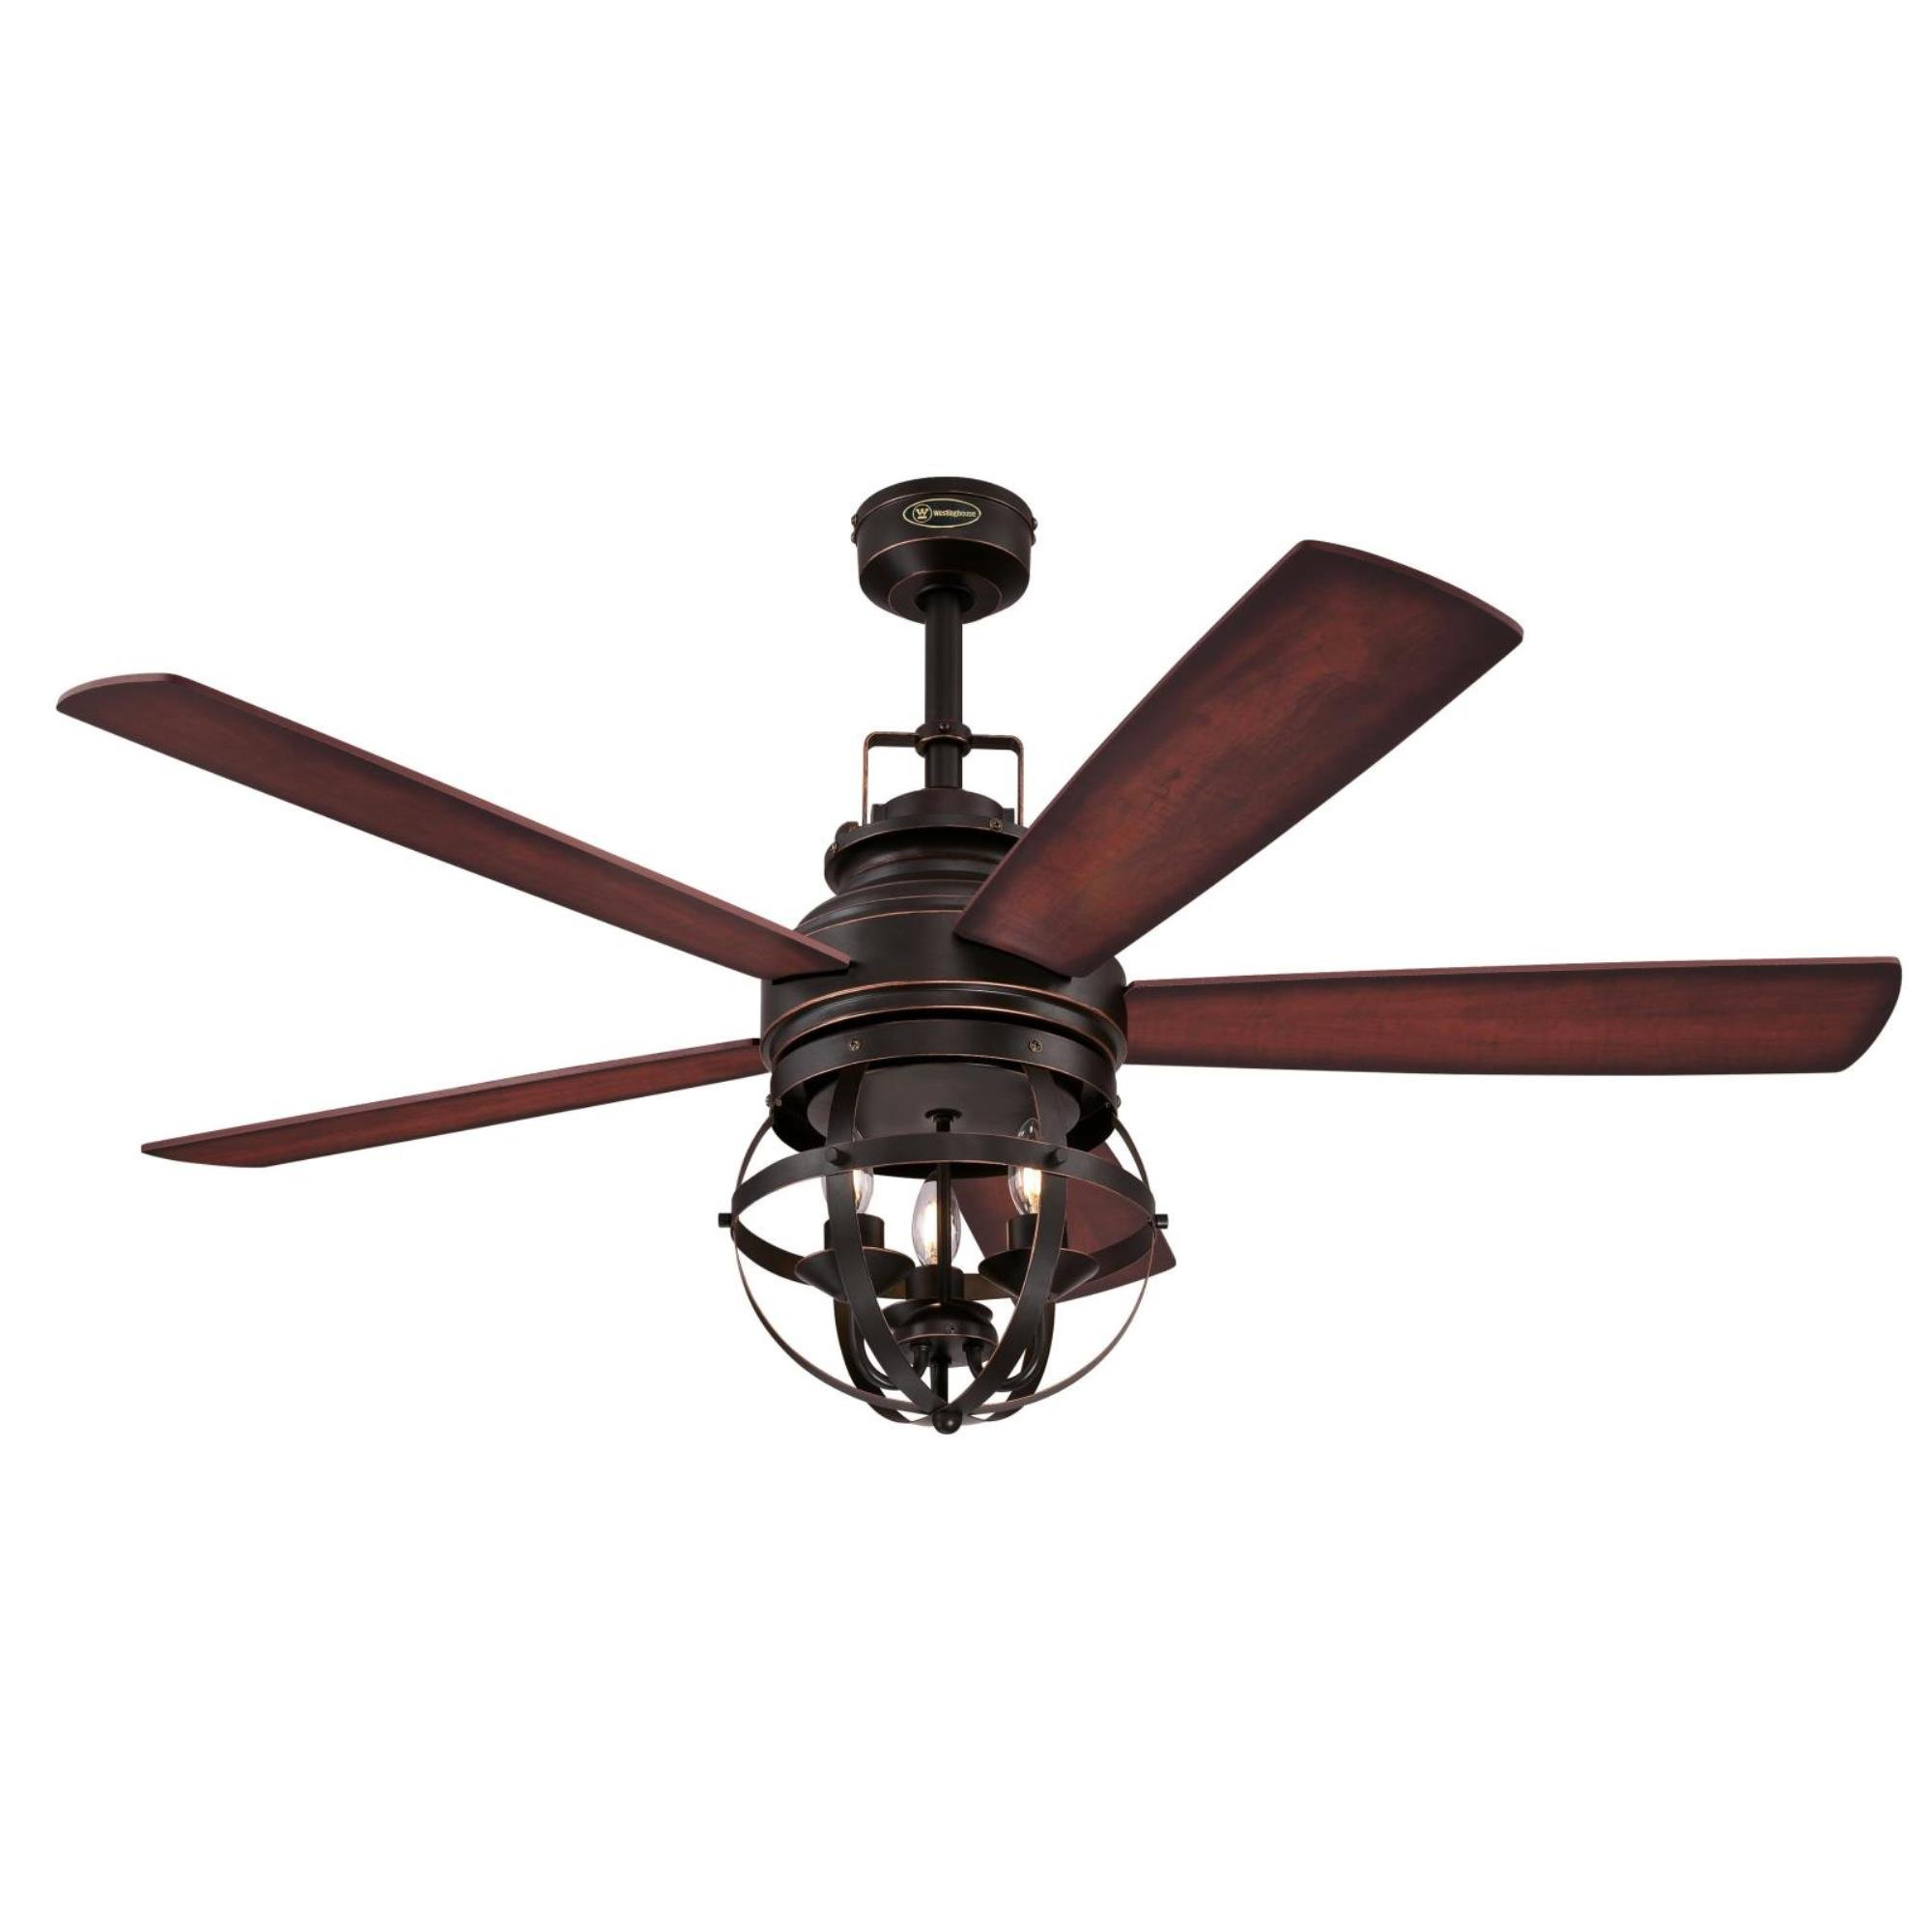 of blade empire with fan fans inch ceiling beautiful monte ceilings carlo light